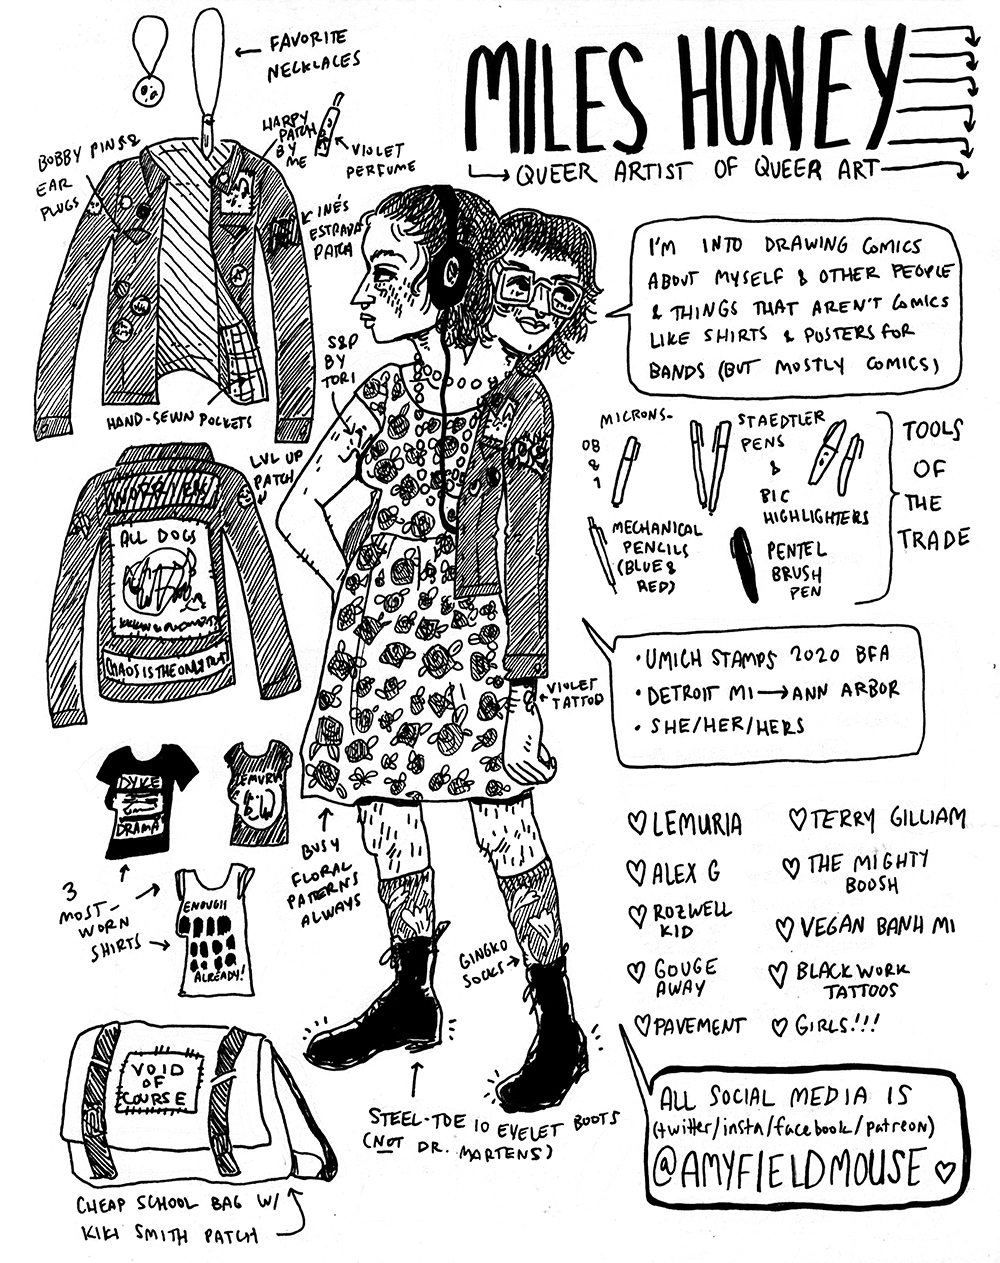 SILVER SPROCKET Interview with Miles Honey Interview with Miles Honey by Natalye Childress for Silver Sprocket Can you tell us more about the job you share in the comic? I think I worked there for like the whole summer, which makes me wonder how much I was getting paid. I remember being pissed that I had to buy sneakers because I was on my feet all day and wearing boots hurt too much. I picked this one to do a comic about because it was actually the closest thing to a real job I'd ever had at that point, besides working part-time at the museum [mentioned below], which I was still doing. I could do something really poignant about calling rich alumni to beg for money now. What is the BEST job you've had? The best job I've ever had was working at a small contemporary art museum in Detroit called MOCAD — I worked there when I was 16 and 17 with a dozen other high schoolers doing event planning for local teenagers. It was actually not as art-focused as you'd think — there were some workshop events but also a lot of movie nights and video game tournaments. Having to get a real job after that kind of sucked. I work at a call center basically telemarketing for my college now, and I really miss getting paid to torrent X-Men movies. At least none of my coworkers are 13 now, though. What is the value or purpose in making art? I totally cannot imagine being anything but an artist. Almost everyone in my life is an artist in some form and it manifests in everything about people — the way you communicate, the way you think, the way you dress, the stuff you like. Art is such a great vehicle for collaboration — as someone whose entire life is music, having that natural exchange is amazing. There are downsides, though. Because I started out doing lots of freelance when I was like 16, tons of people figured out they could rip me off because I was young and dumb, especially musicians and people who I respected. I've learned not to tell people too many times that I'd be honored to work with them — that doesn't mean I don't need to get paid too! Do you think artists have a social responsibility? I think everyone who contributes to society in any way does. At the very least, there's a responsibility to think about the things you put into the world. If you're not making work that actively speaks out against bigotry, make sure your work at least doesn't reinforce bigotry, is my philosophy. It's complicated, though, because bigotry is so wired into societal norms. What I really think about is the way I draw people, because that's what most of my work focuses on. I never saw different body types and races and presentations in the art I drew inspiration from, so I never represented it in my work either until I was maybe 15 or 16 and realized how bad that was. It sucks — a lot of my favorite artists are still guilty of that, especially the way women are drawn. I saw a great Nicole Miles comic recently called How I Learned To Draw Black People Like Me that really resonated with me. I have a lot of respect for artists who take the initiative to work against the norm and include more representation. What are you working on now? Since January I've been trying to do a comic every day and that's been cool. I tried it last year and only made it through a month, so I've scaled back on my expectations, and sometimes if I'm busy I'll go a few days without one. I post them all up for subscribers on my Patreon, and all of last year's are on my site.  Other than that, I'm planning on doing some more longer comics when classes let out and printing those into physical zines, which I haven't done in a long time. I've also been doing a lot of freelance lately, mostly shirts and stuff for bands. I did a shirt for CUTTERS and that'll be printed in the near future, which I'm really stoked on. I'm always looking for more musicians to work with! It's my favorite thing about being an artist. If someone liked your comic in As You Were, what would you recommend they check out next? I don't have any other comics in print available right now, but most of my work is online at amyfieldmouse.com. As far as other artists, I really love Rayne Klar's work — they had a comic in As You Were #5 too, and they've been a longtime friend and inspiration. Cristy C. Road's memoir Spit and Passion changed my life. Marjane Satrapi's Persepolis, Ulli Lust's Today is the Last Day of the Rest of Your Life, anything by Phoebe Gloeckner. Those are all my biggest inspirations. For more from Miles Honey, check out her website and follow/like her on Twitter, Facebook, Instagram, and Patreon.